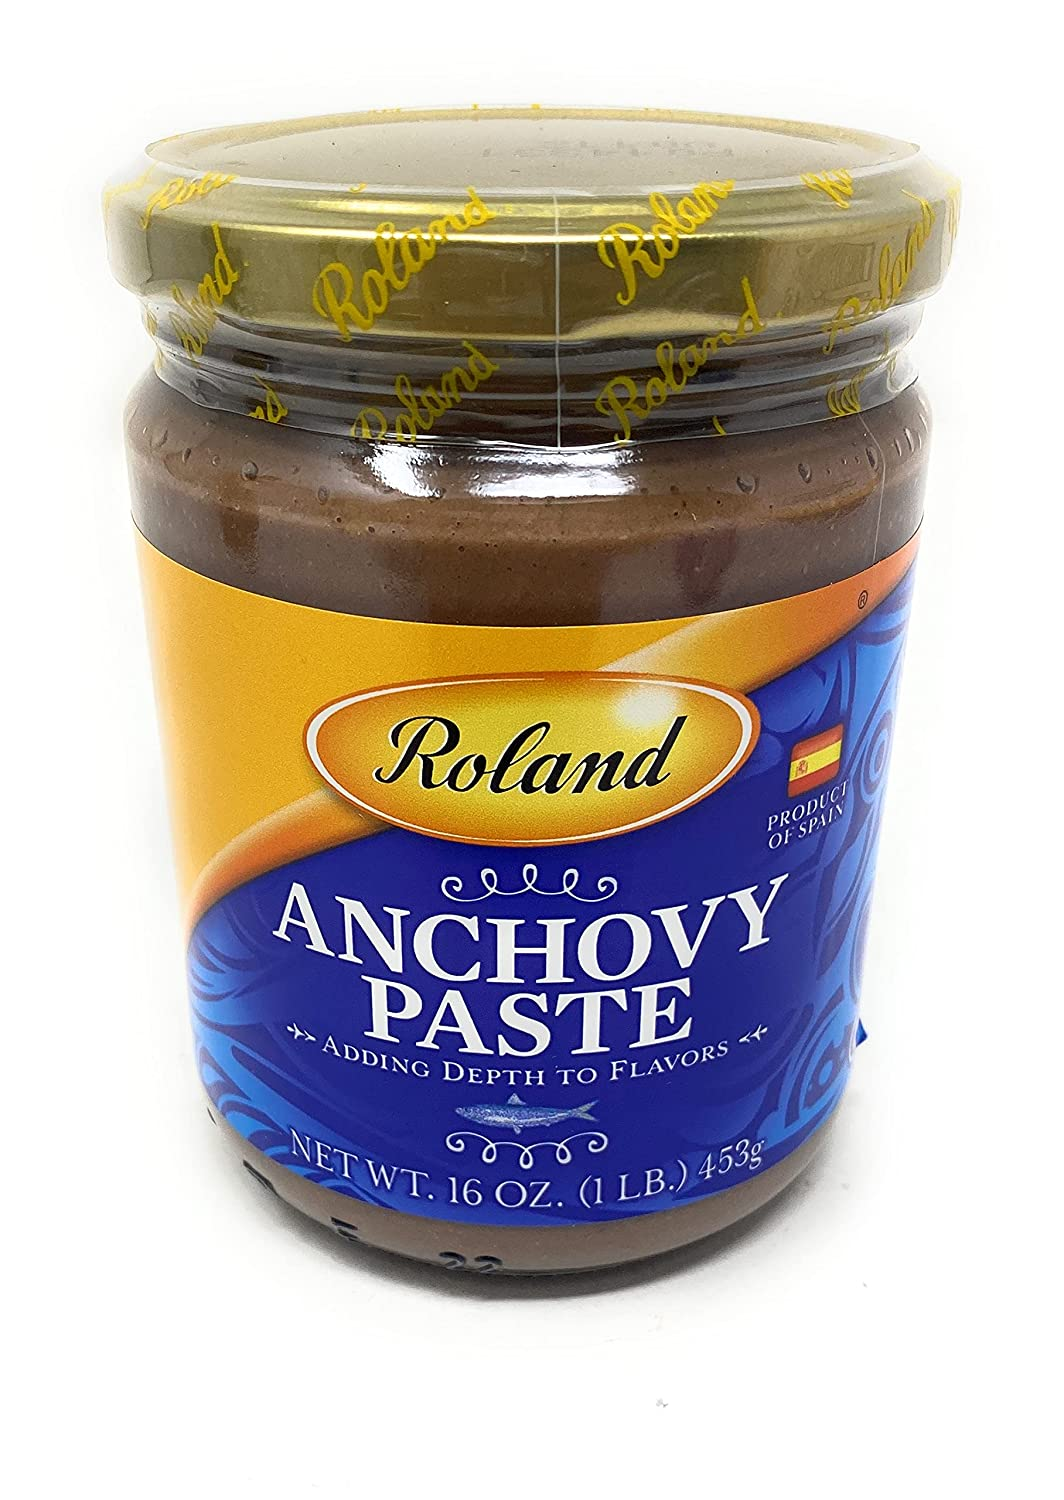 Roland, Anchovy Paste, 1lb Jar Product of Spain